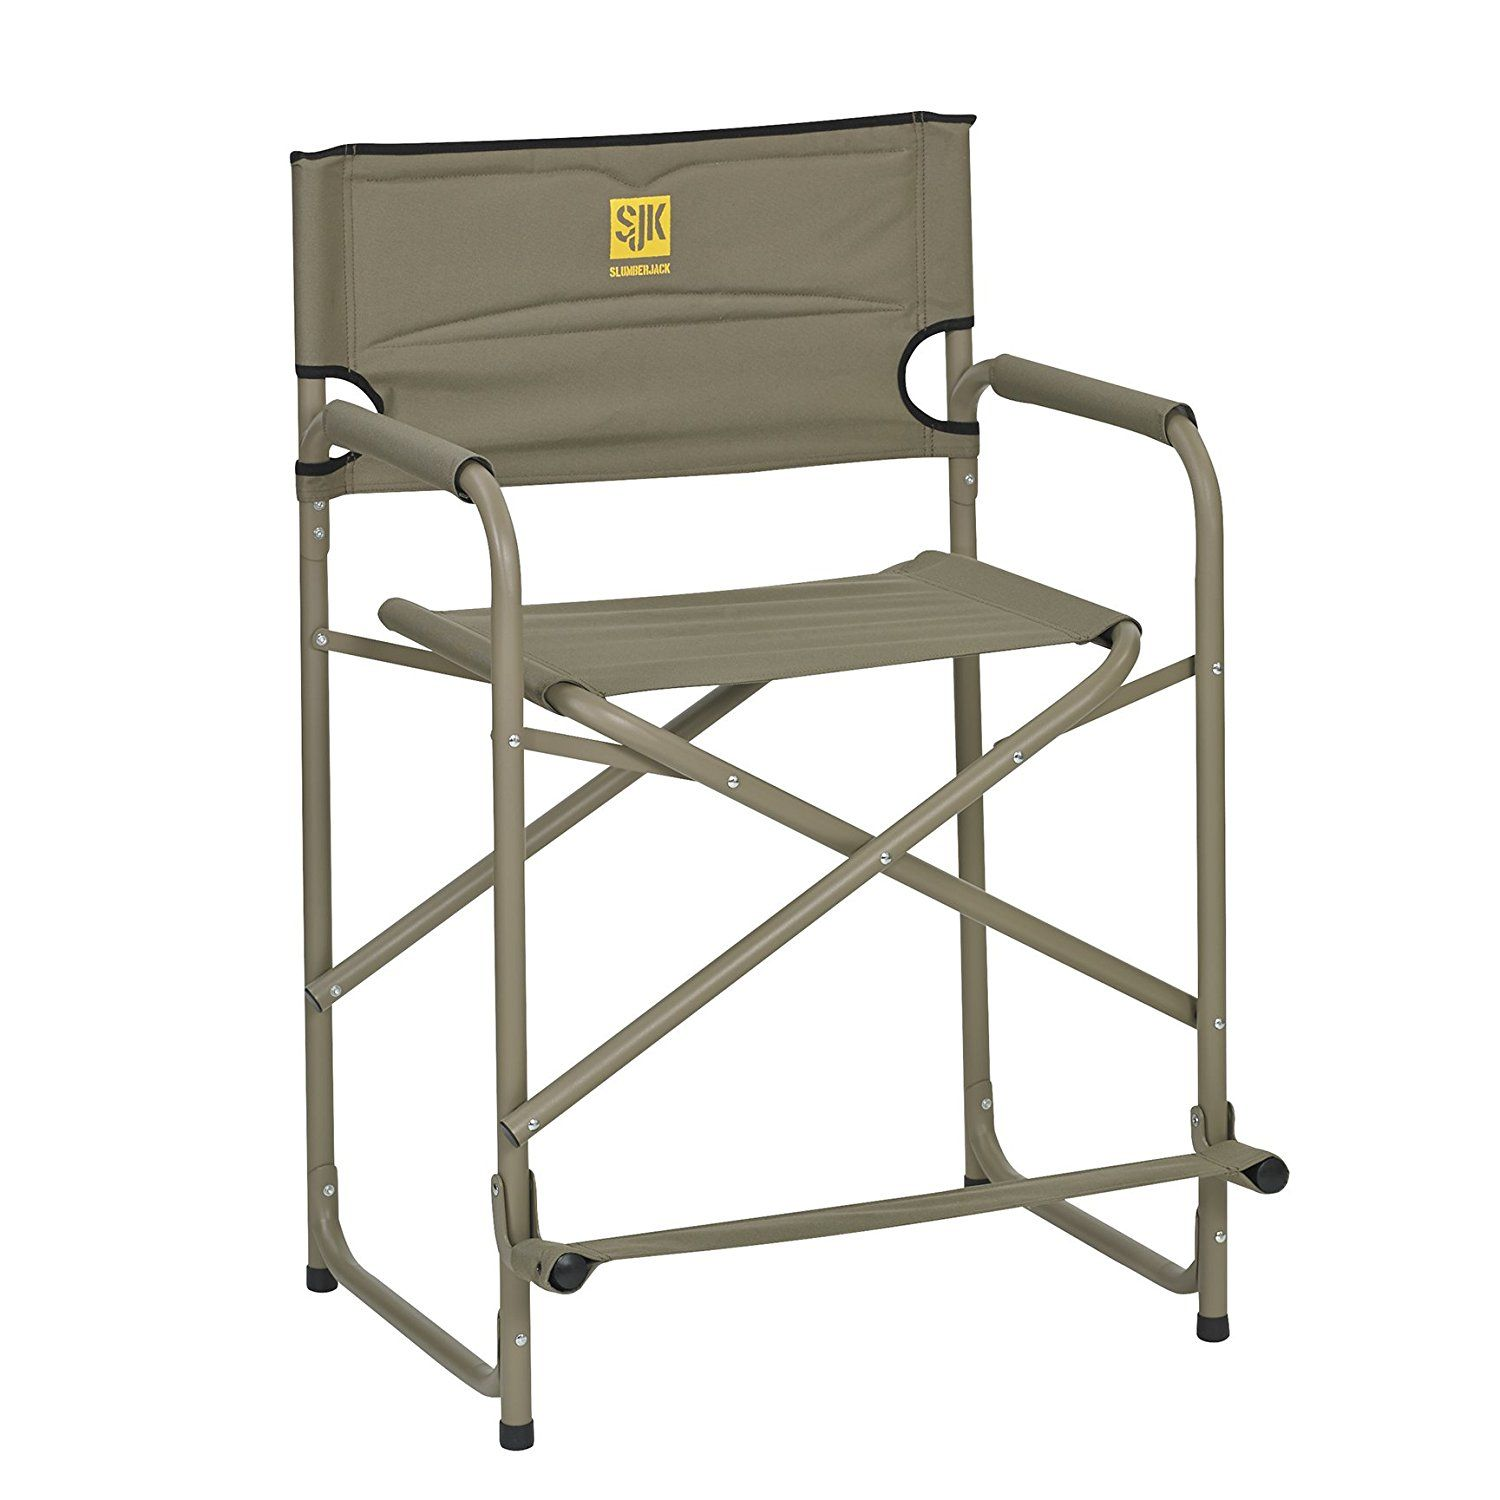 Steel Chair Accessories Diy Dining Room Seat Covers Camping Slumberjack Adult Big Tall Discover This Special Product Click The Image